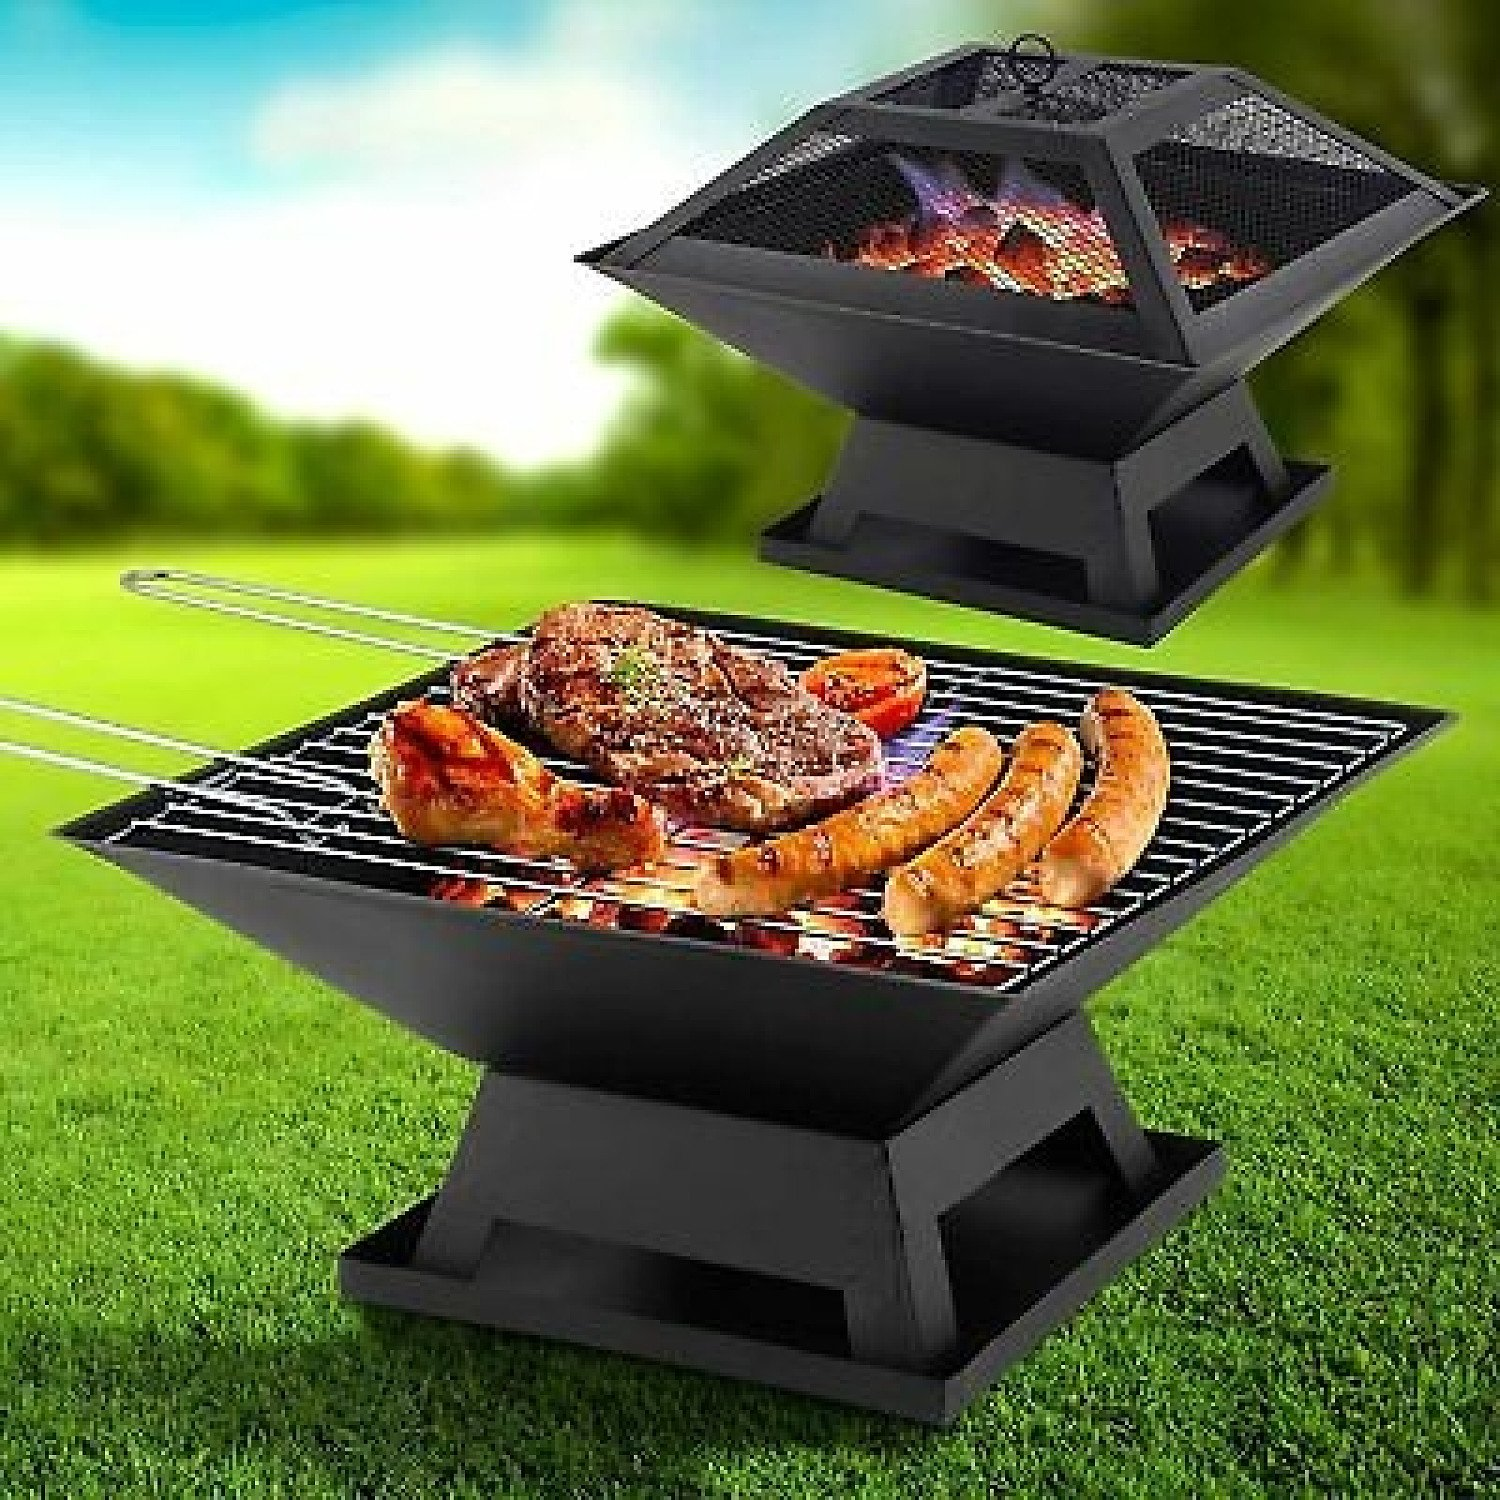 Square Fire Pit and BBQ Grill